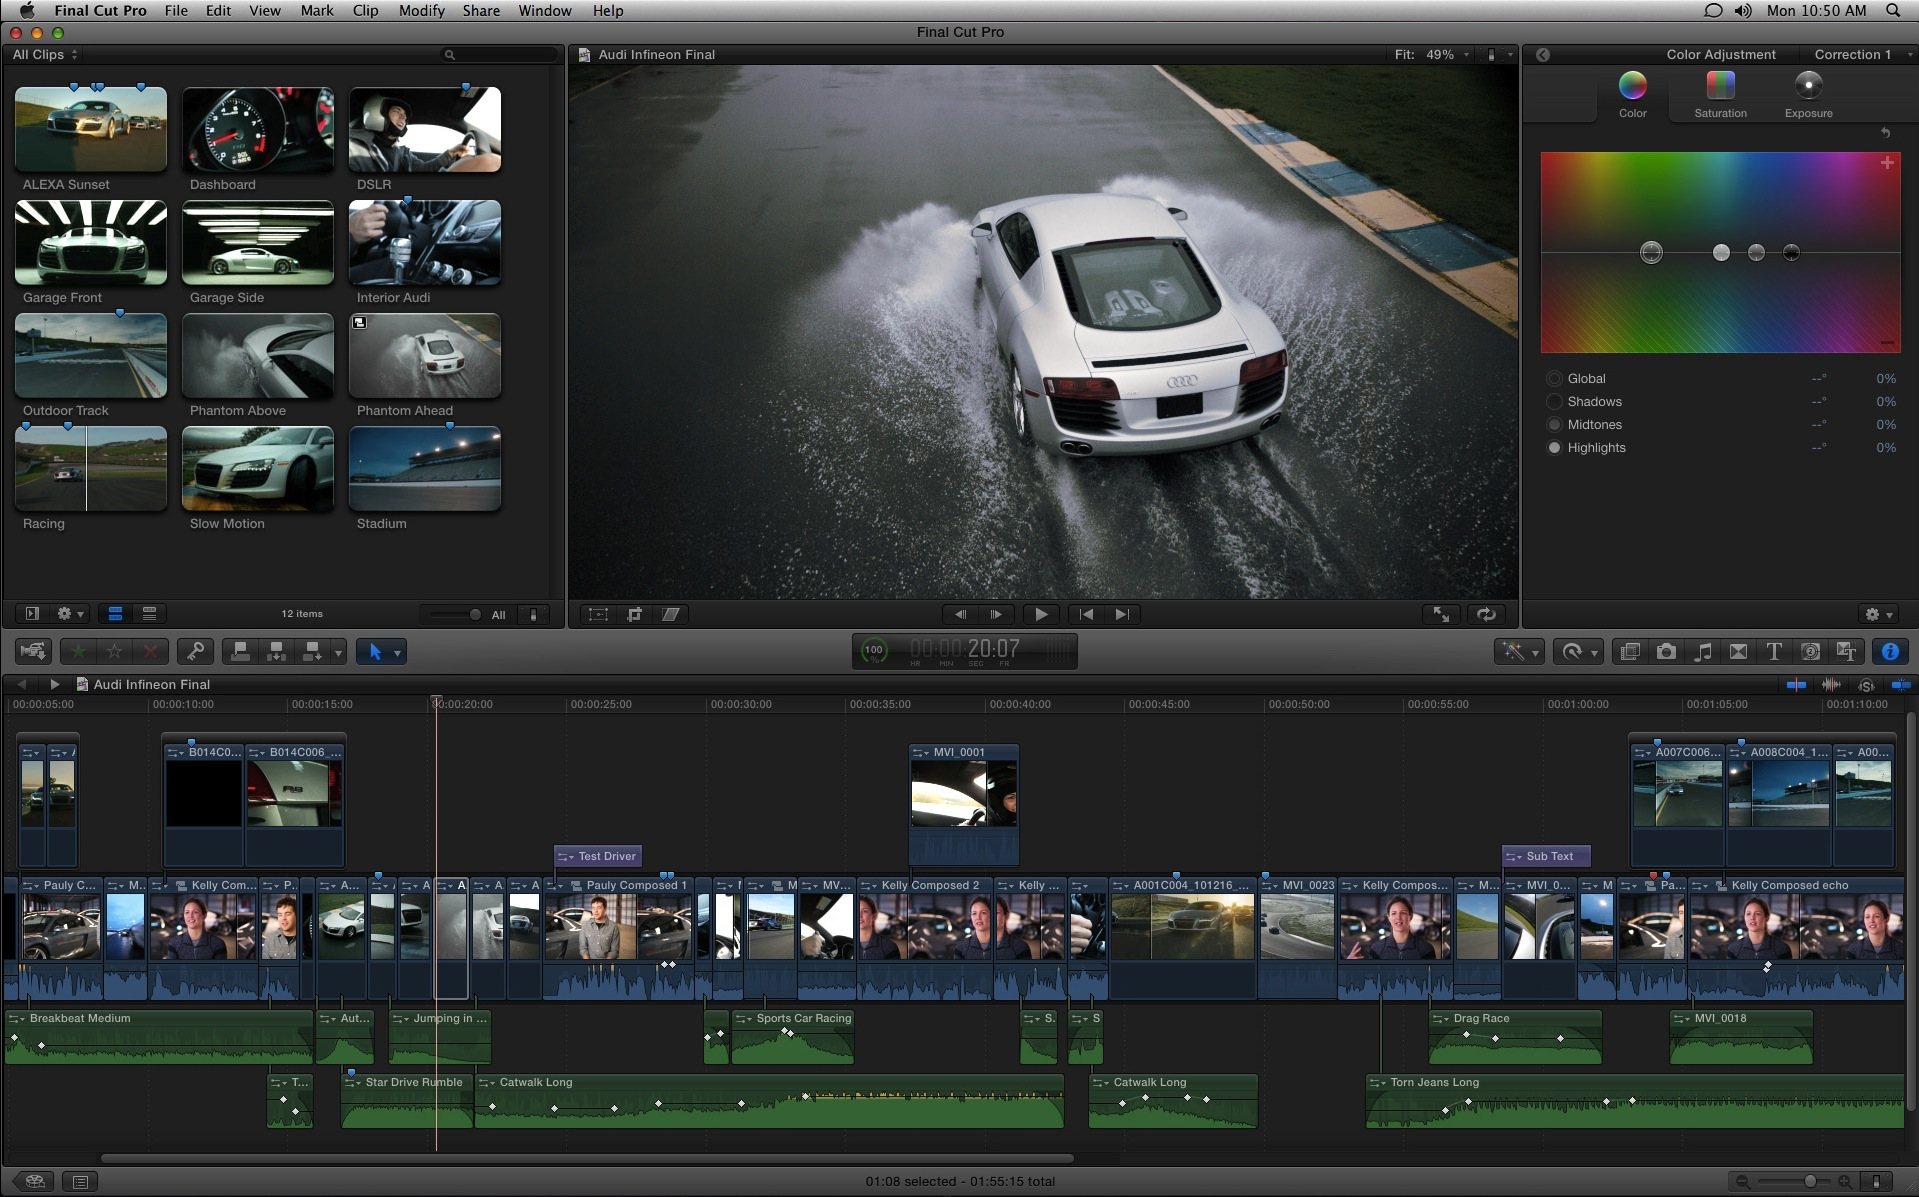 Apple's Video Editing Software Final Cut Pro X Reaches 2